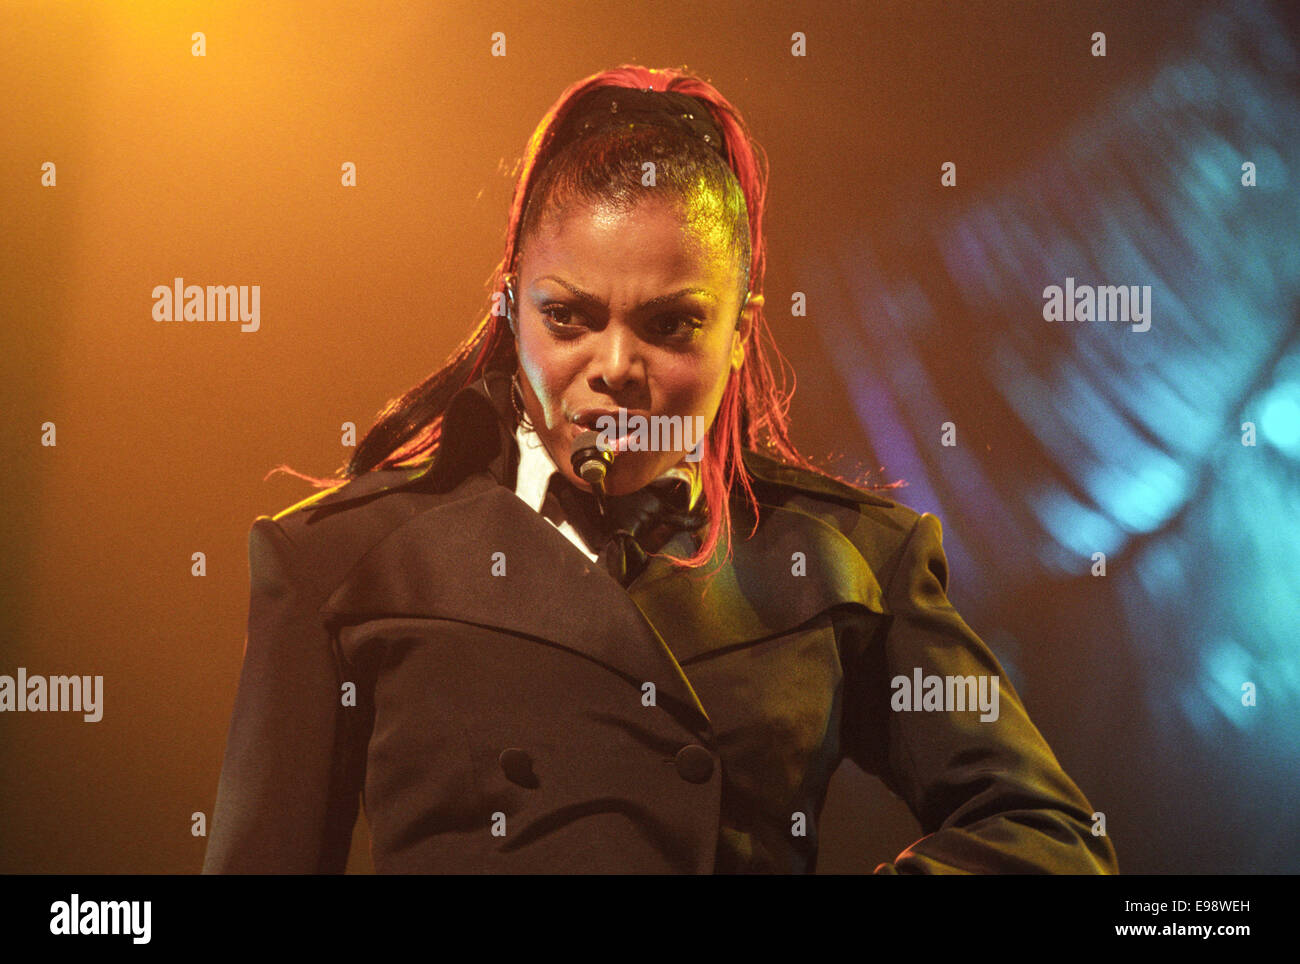 American singer Janet Jackson in concert at Glasgow SECC, in